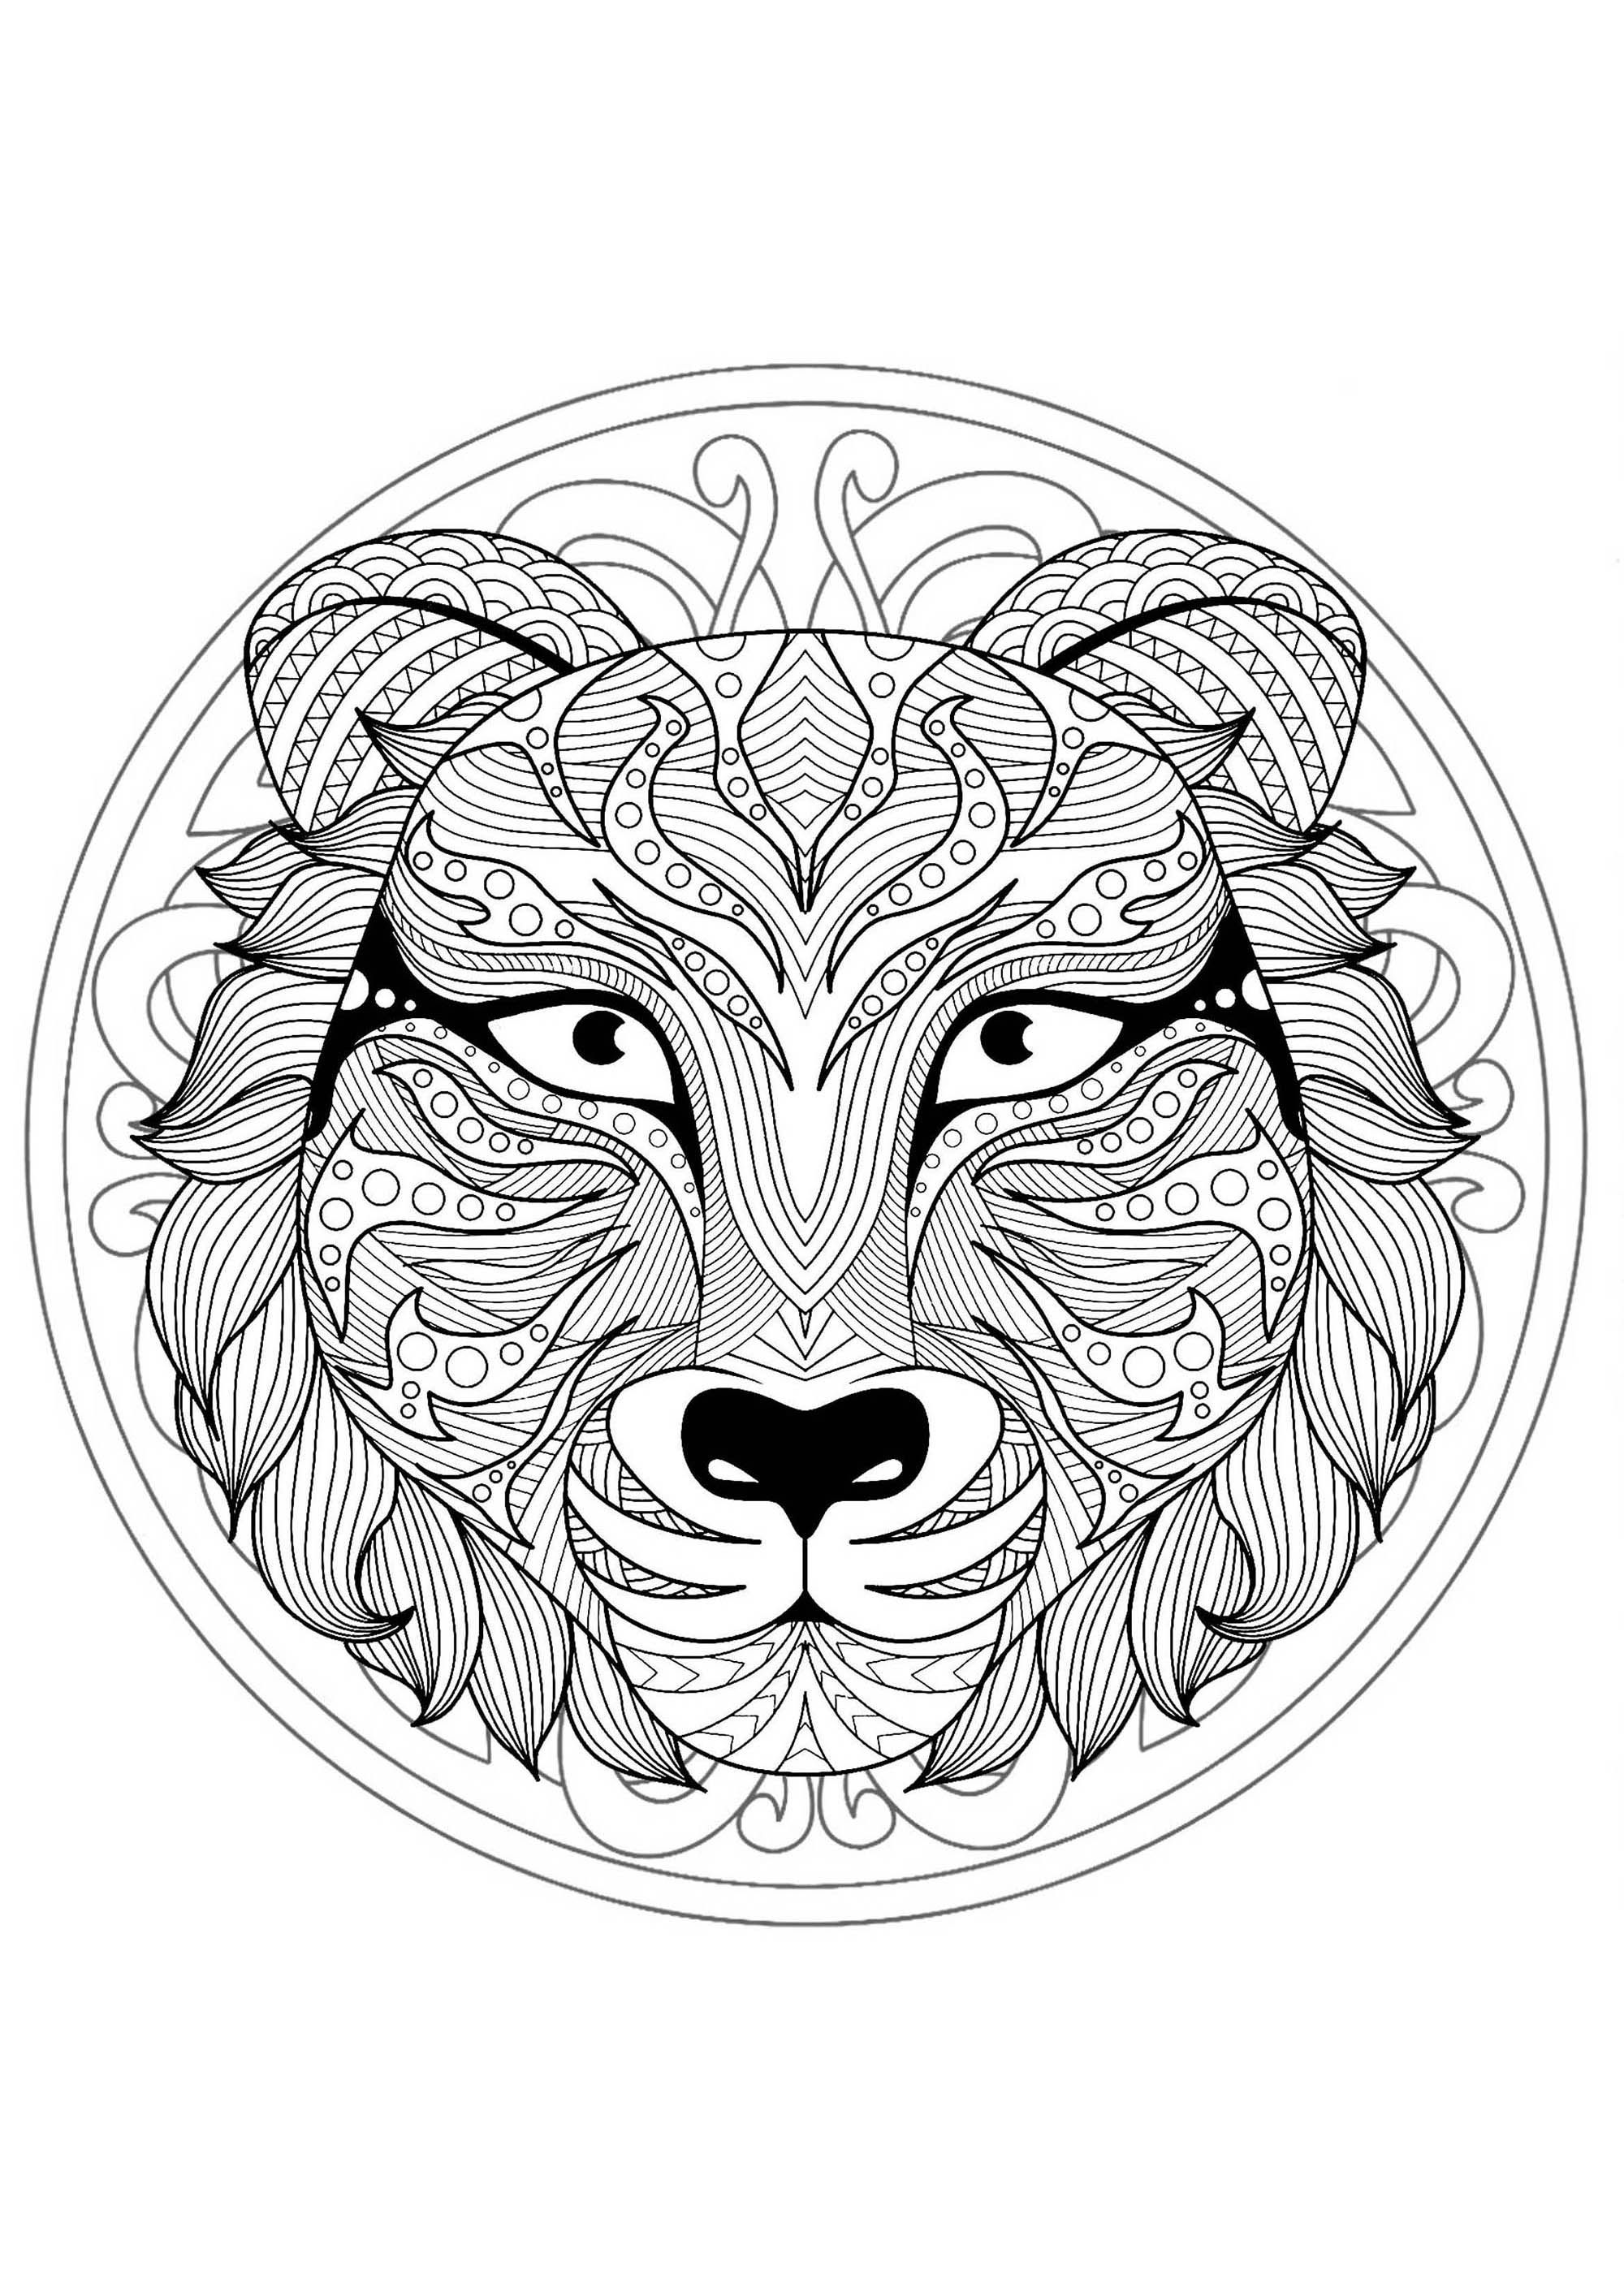 Mandala To Color With Very Gorgeous Tiger Head And Beautiful Interlaced Patterns In Background Lion Coloring Pages Mandala Coloring Pages Mandala Coloring